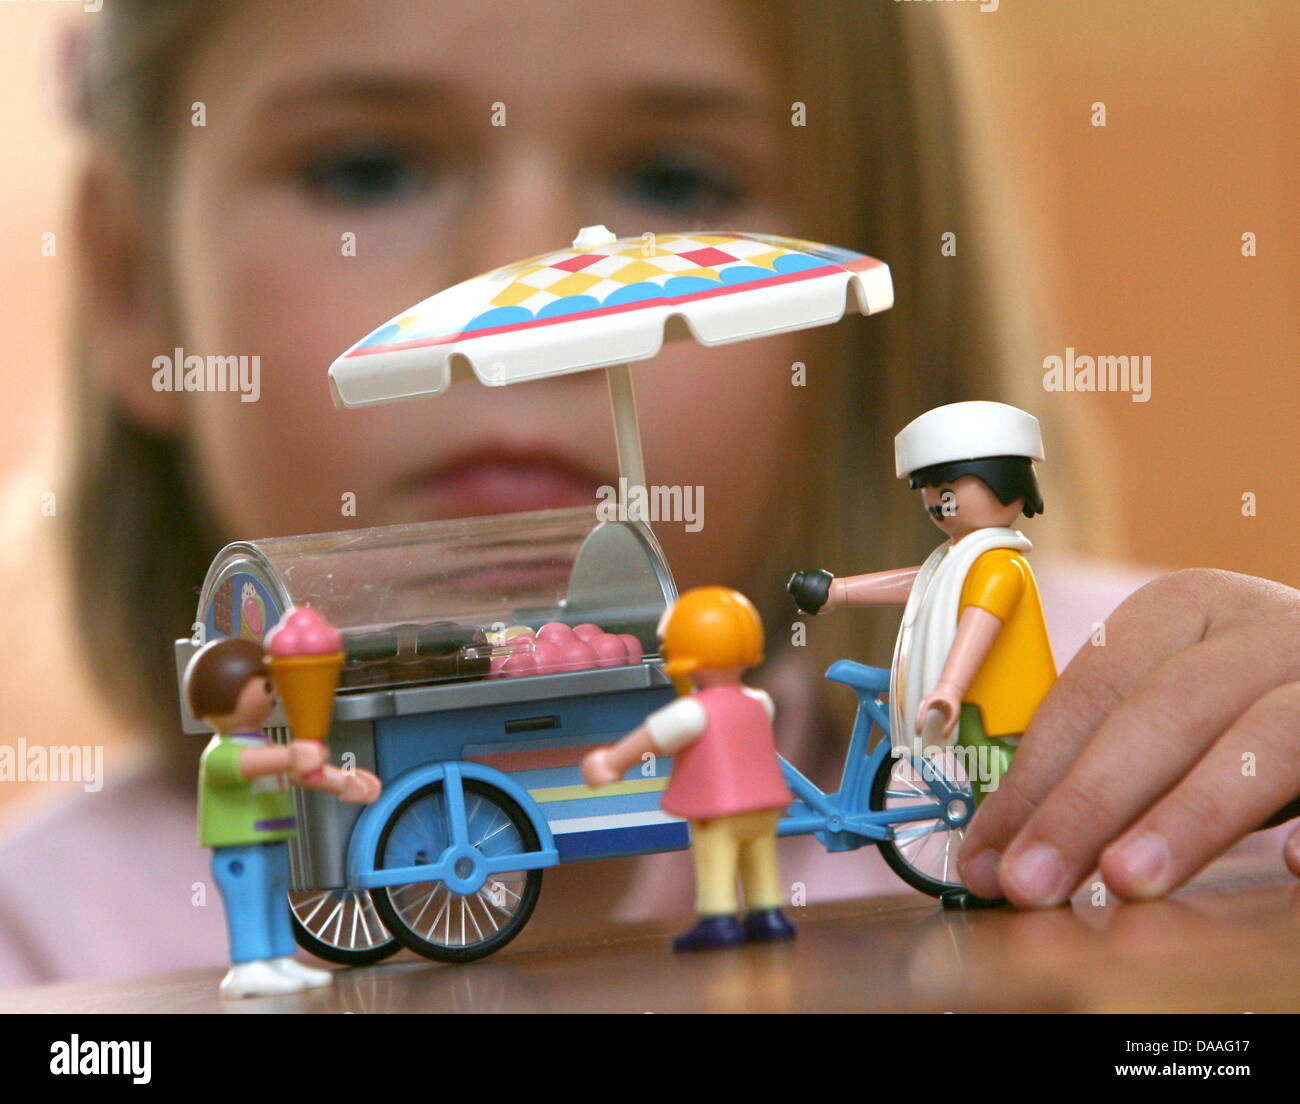 A file picture taken on 10 November 2006 shows Lea (4) who plays with an ice cream van and figures by Playmobil - Stock Image